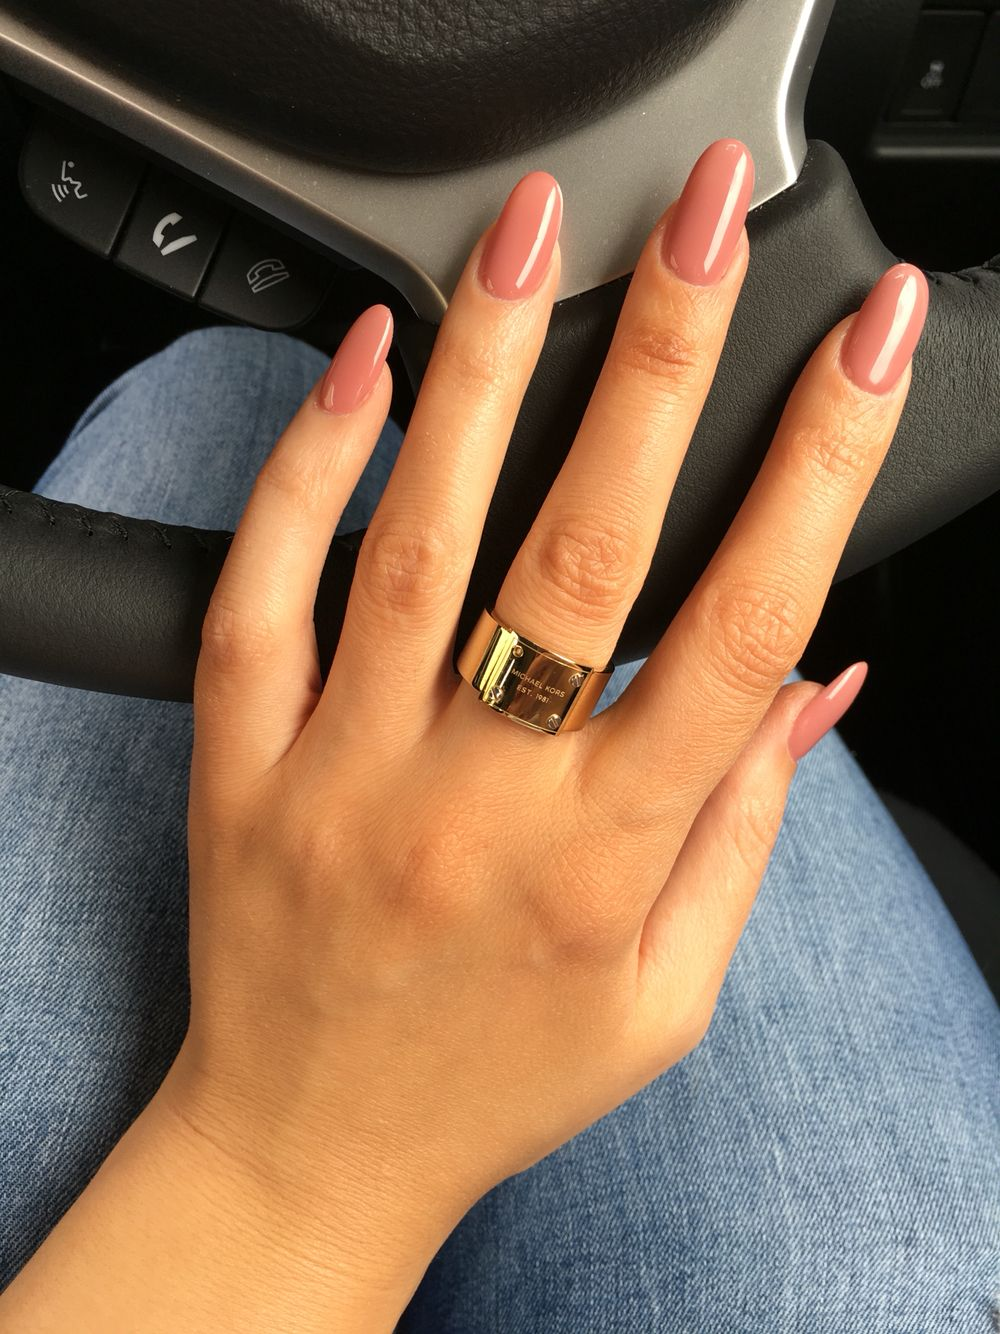 Pin by Alexandra Kiss on Nails | Pinterest | Pink oval nails, Oval ...